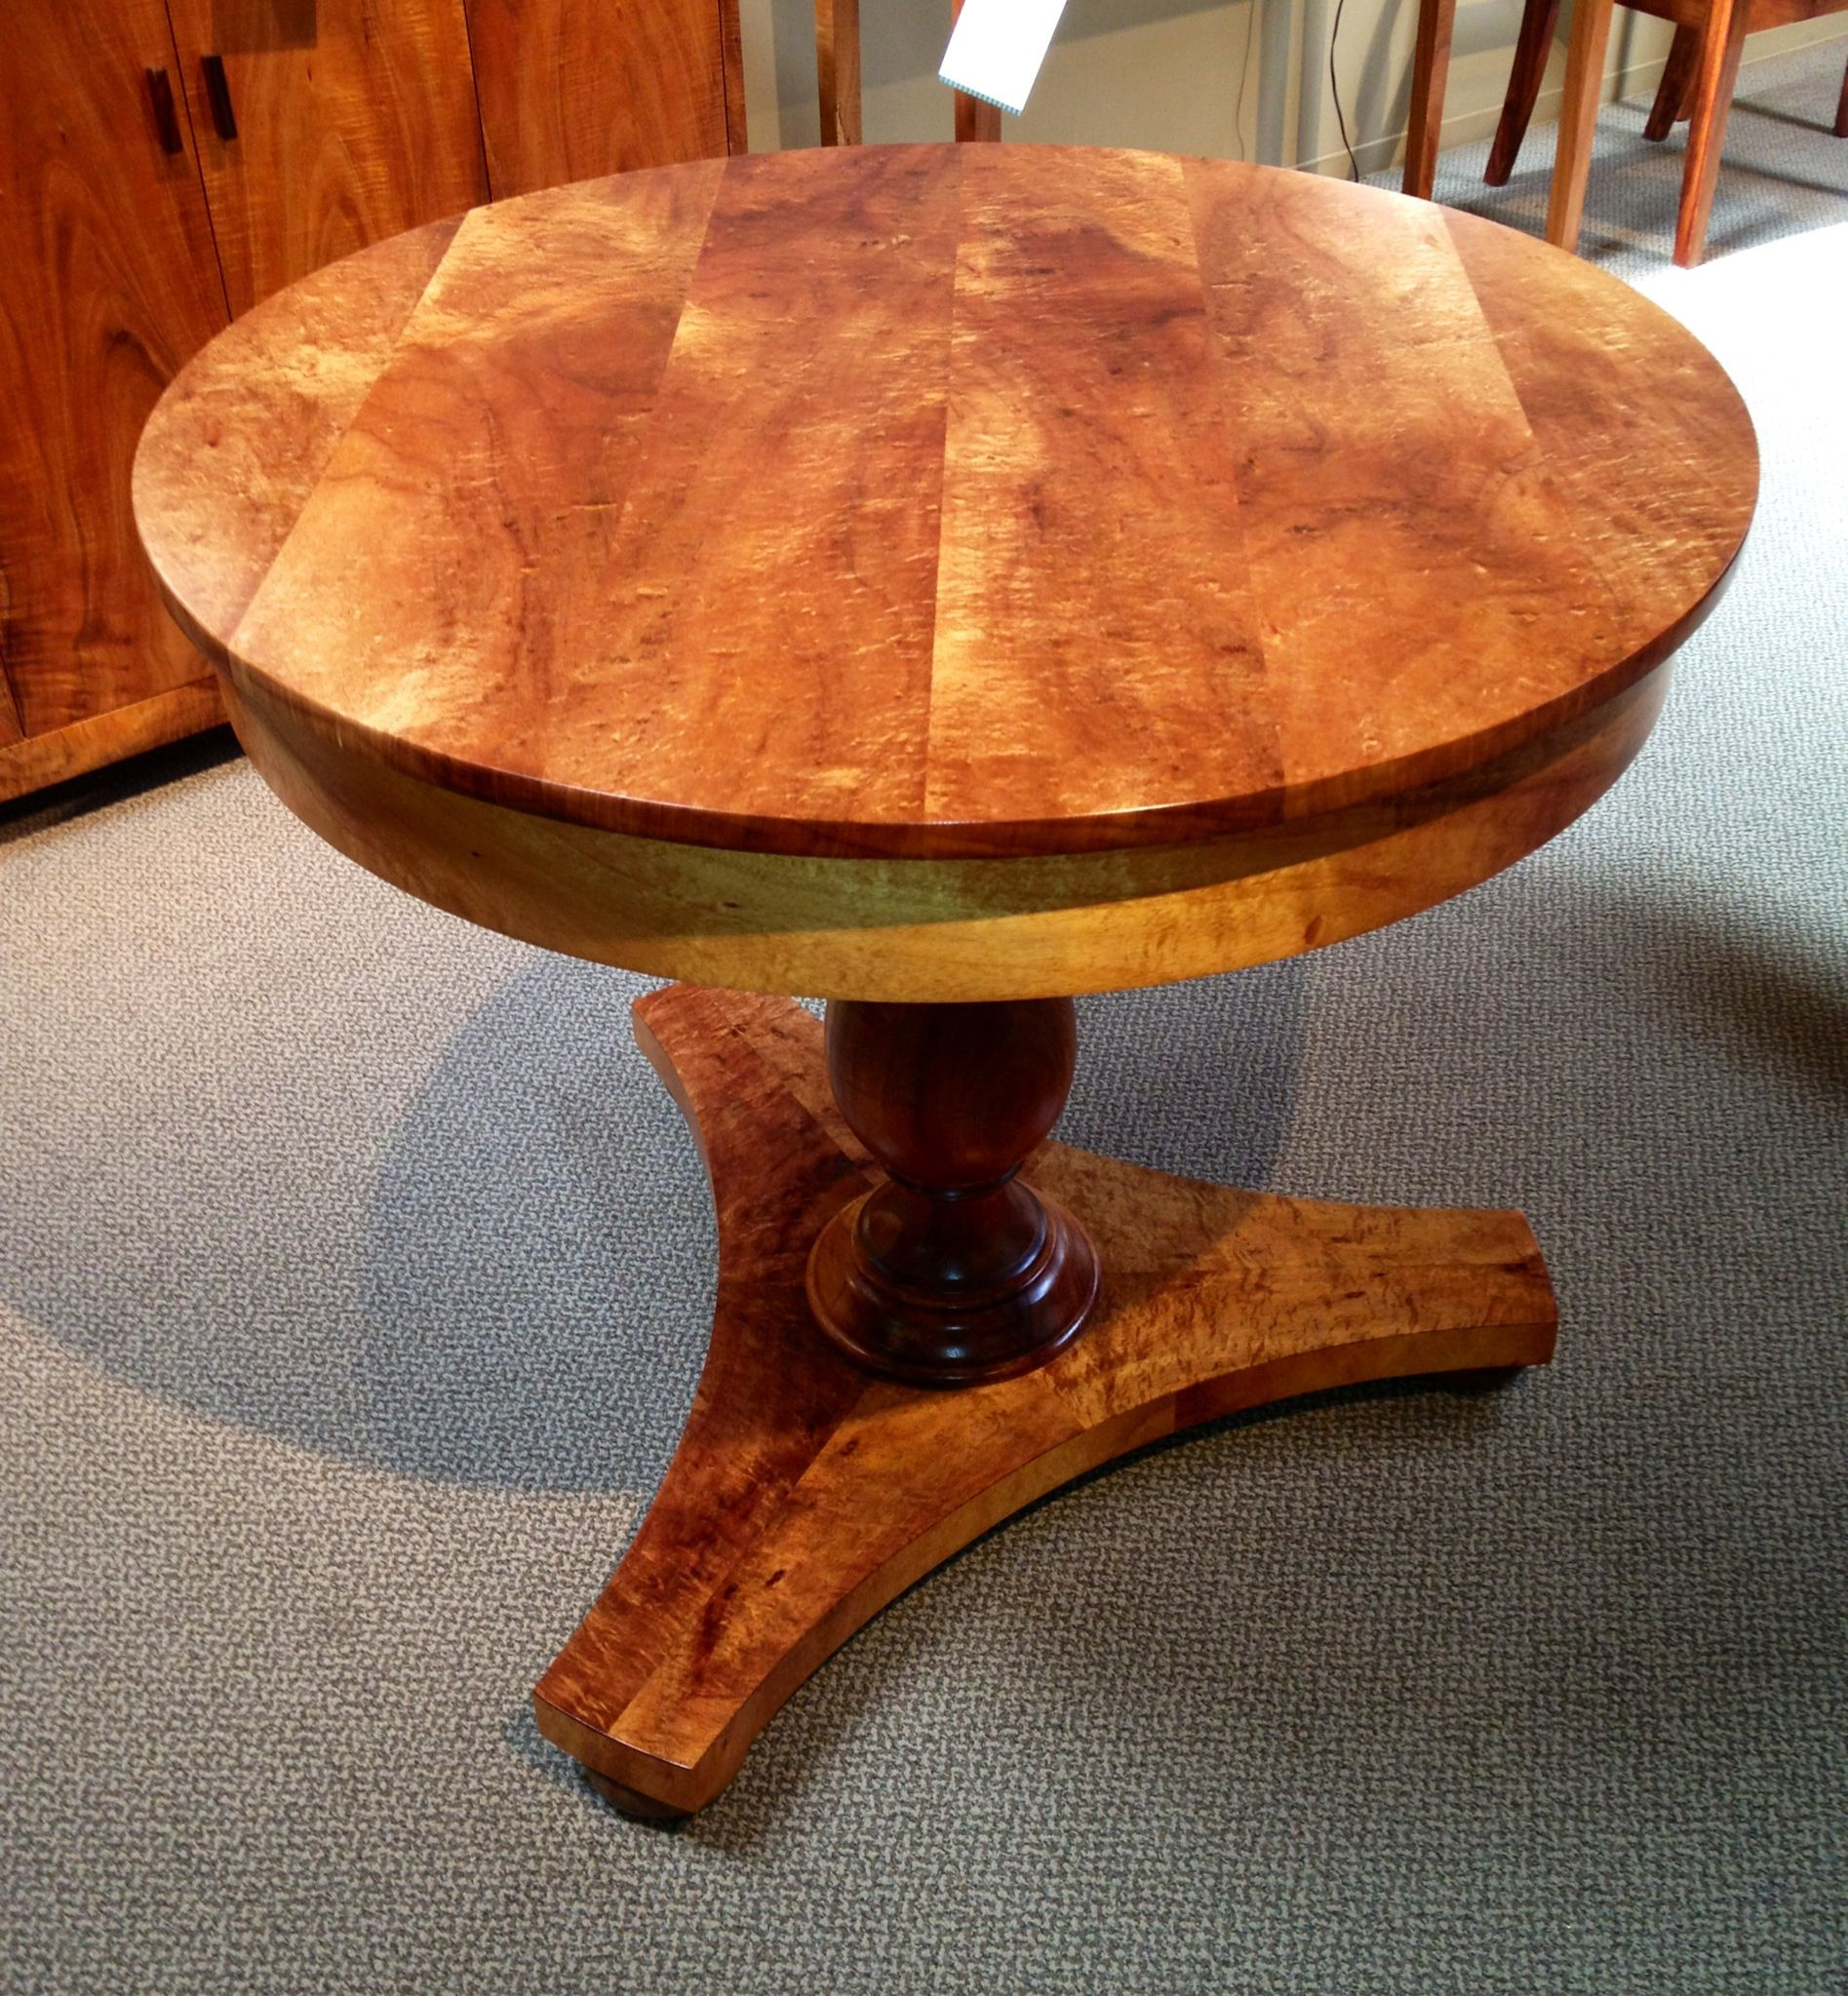 Curly Koa Entry Table With Lathe Turned Pedestal Made By The Fine Furniture Craftsmen Of Martin Macarthur I Entry Table Tropical Island Decor Fine Furniture [ 2047 x 1895 Pixel ]